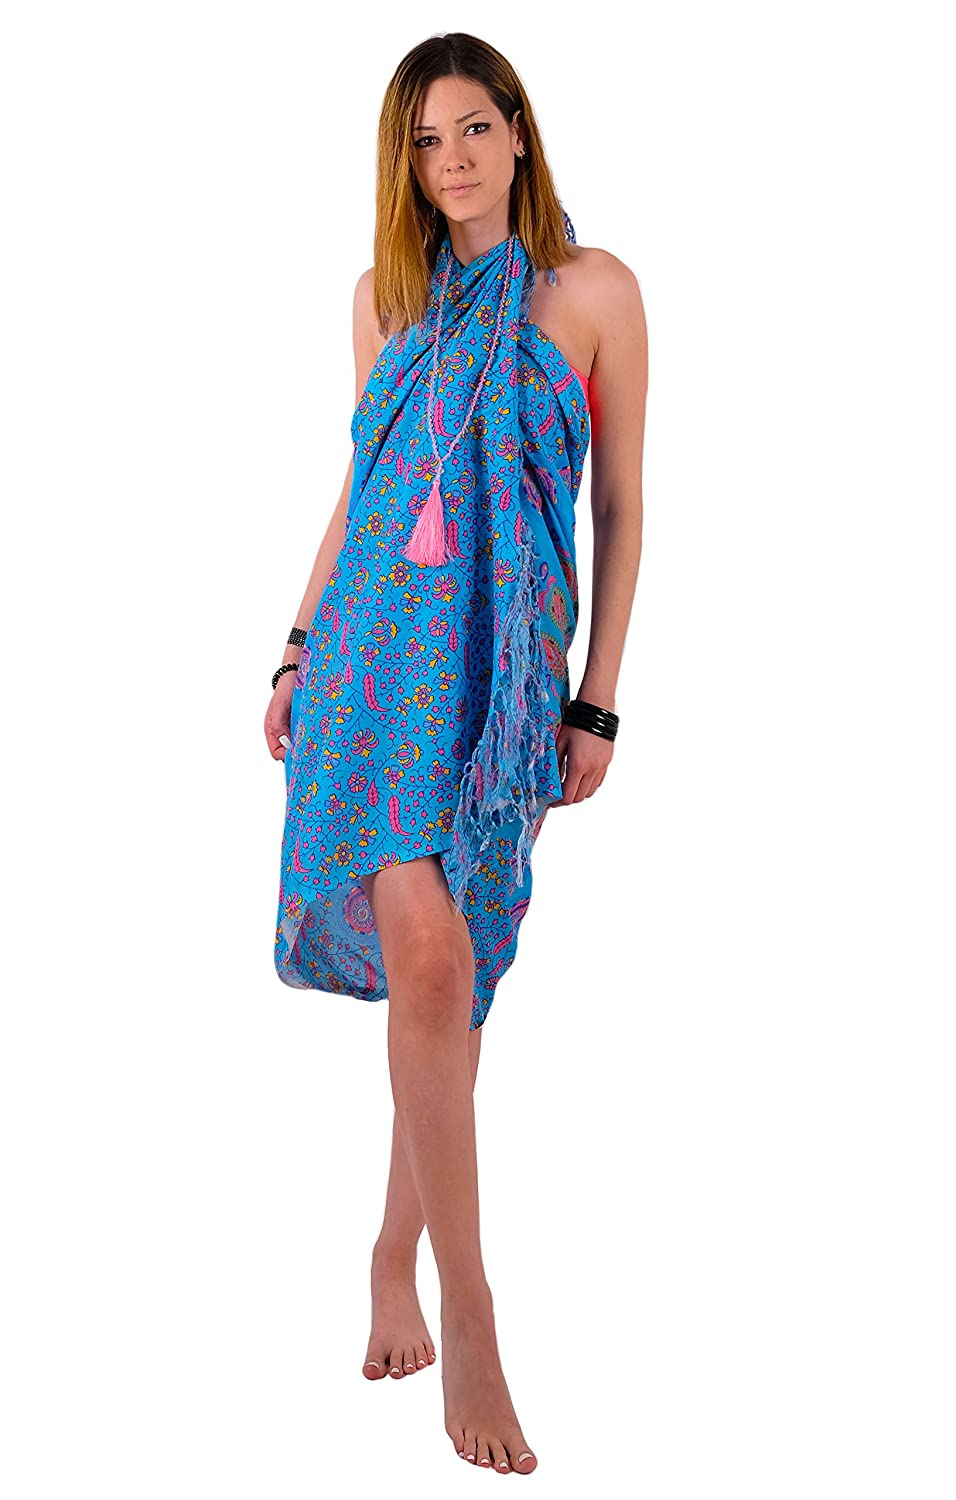 Tapestry Boho Chic Sarong Throw by Mandala Life ART Wall Hanging Dress Gorgeous Hand-Printed Bohemian Pareo Endlessly Versatile Uses: Bikini Swimsuit Cover Up Beach Blanket